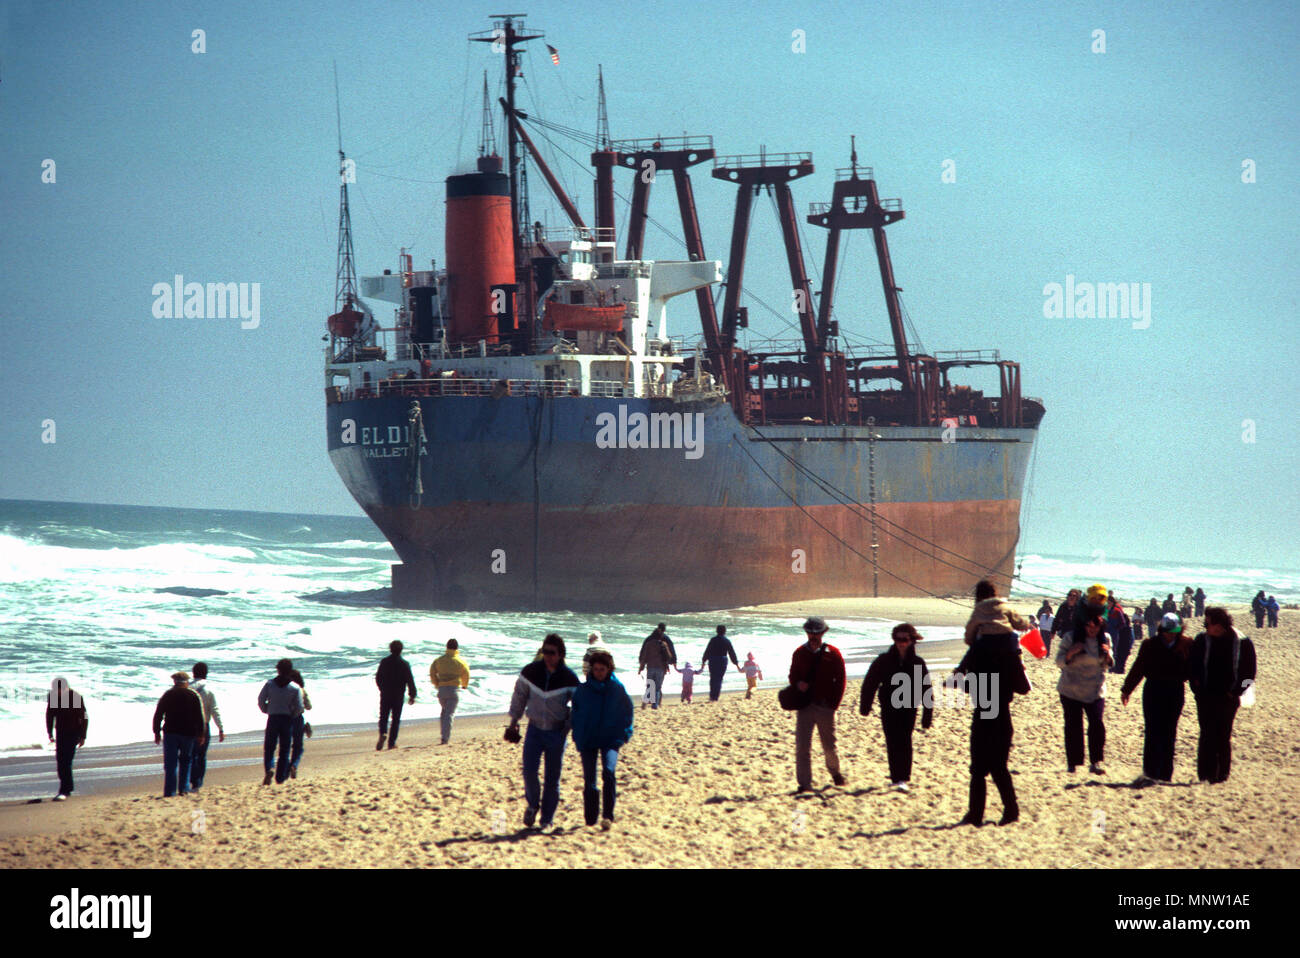 The Greek ship Eldia, aground off East Orleans, Masachusetts, USA - March 29, 1984 - Stock Image